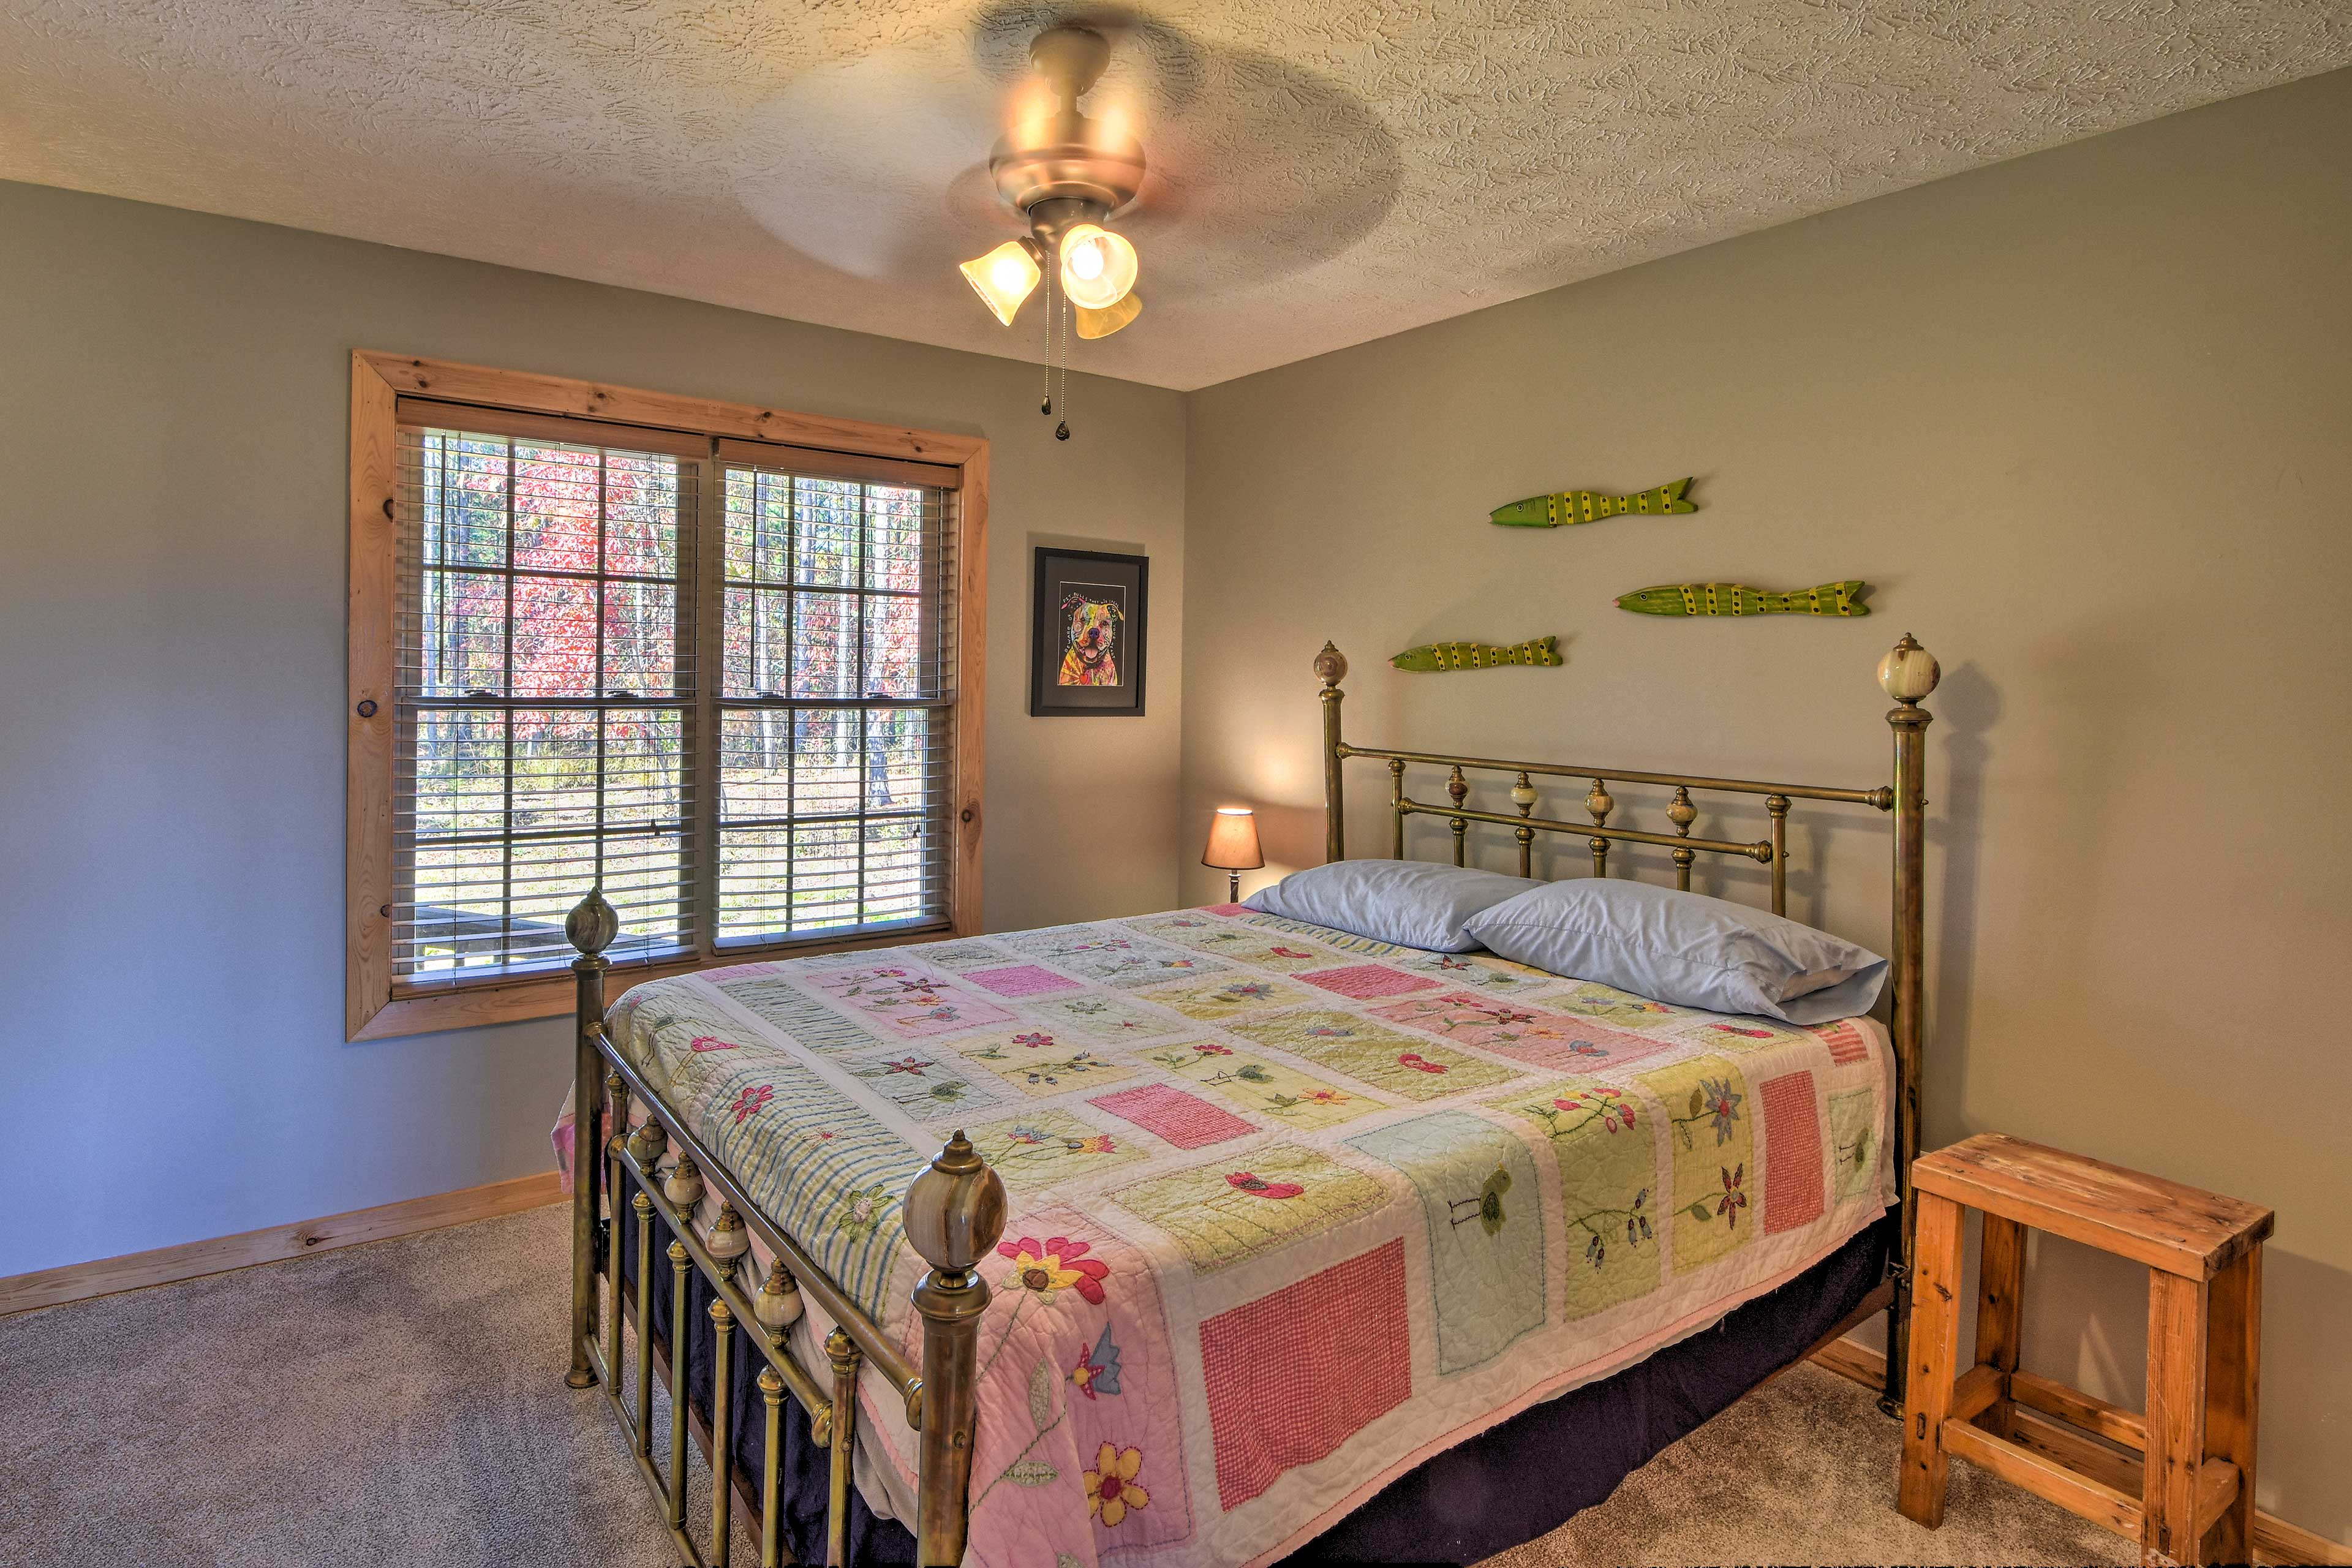 The second bedroom features a queen bed.